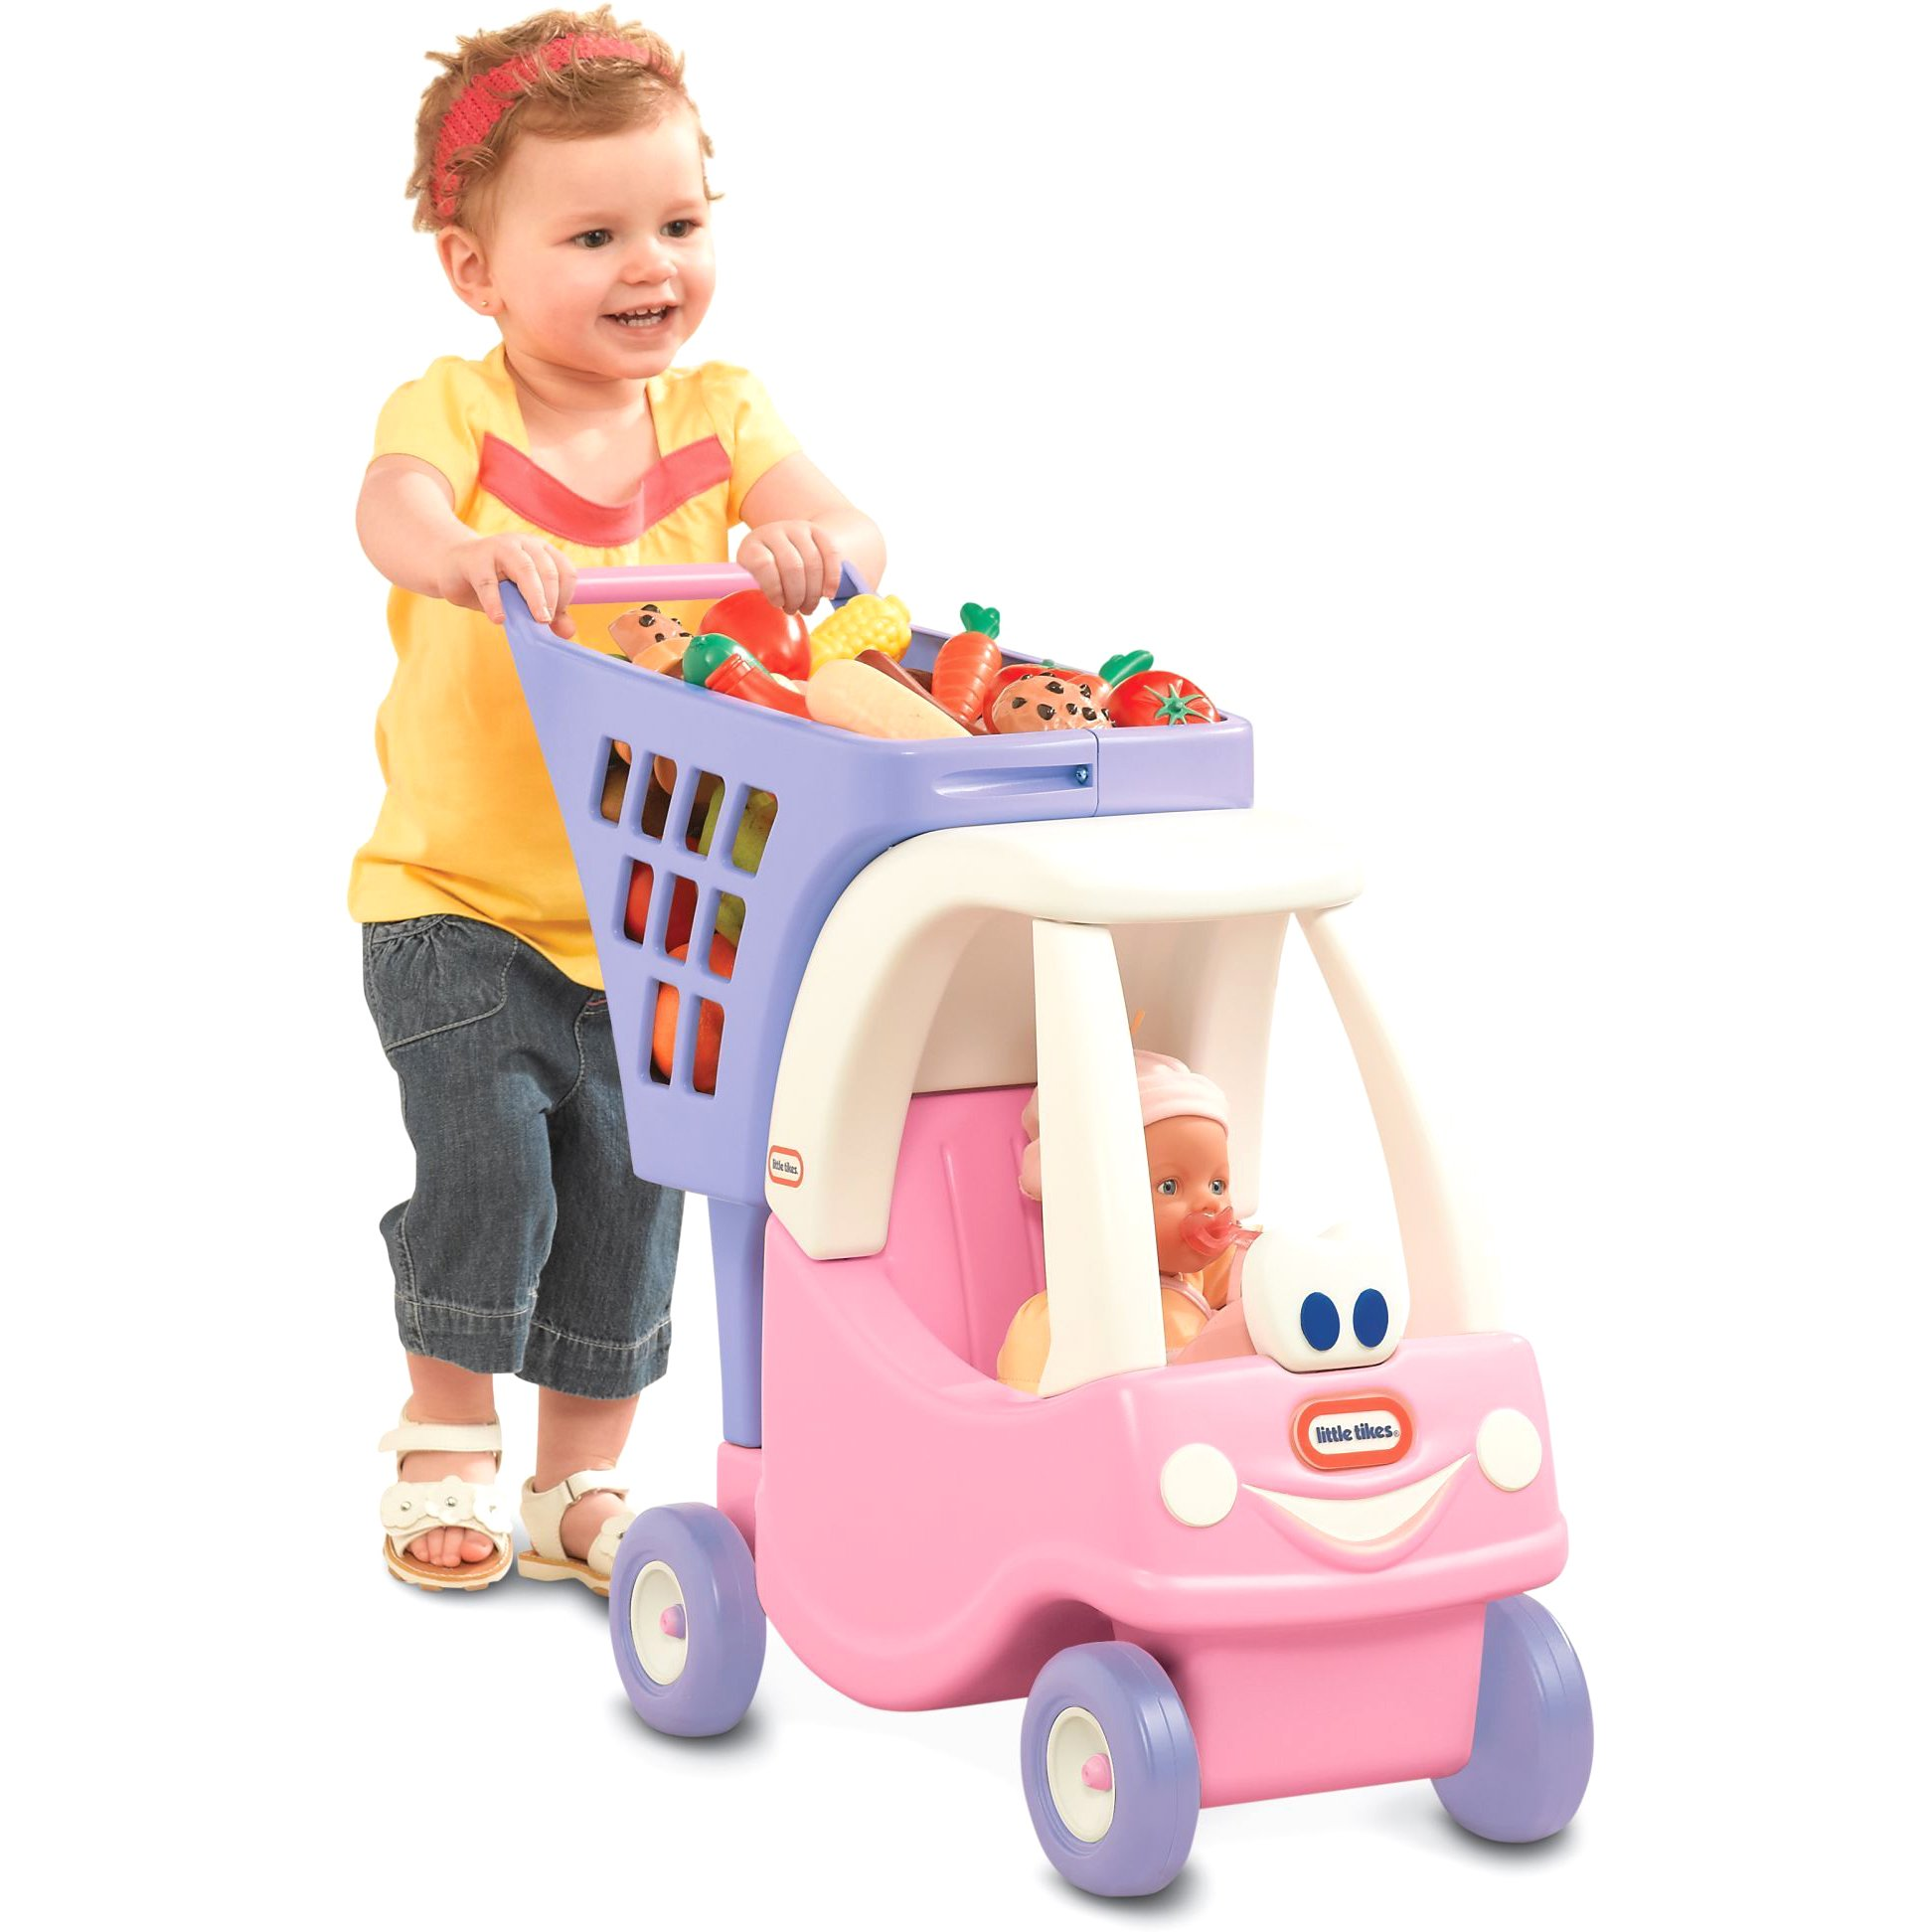 Princess Cozy Coupe Shopping Cart Is Perfect For Keeping Little Ones Busy by Little Tikes